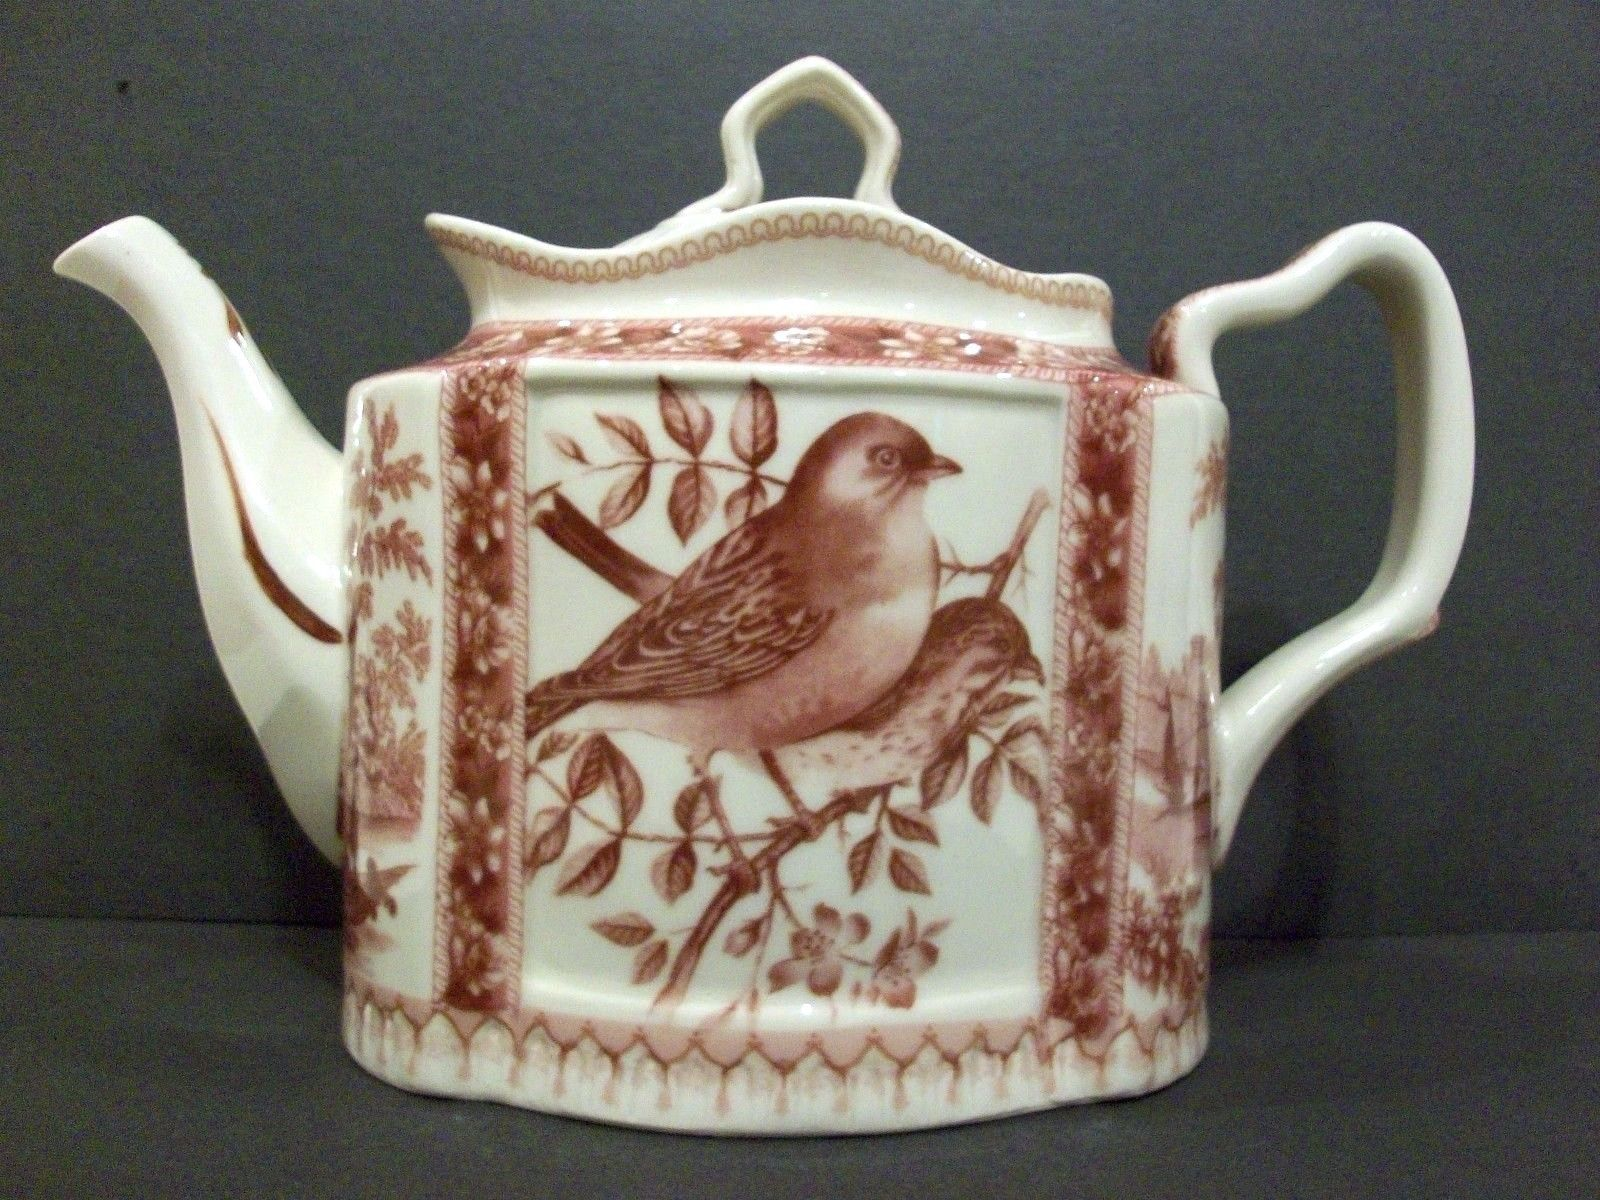 Details about vintage tea pot red and white with bird for Riproduzioni design